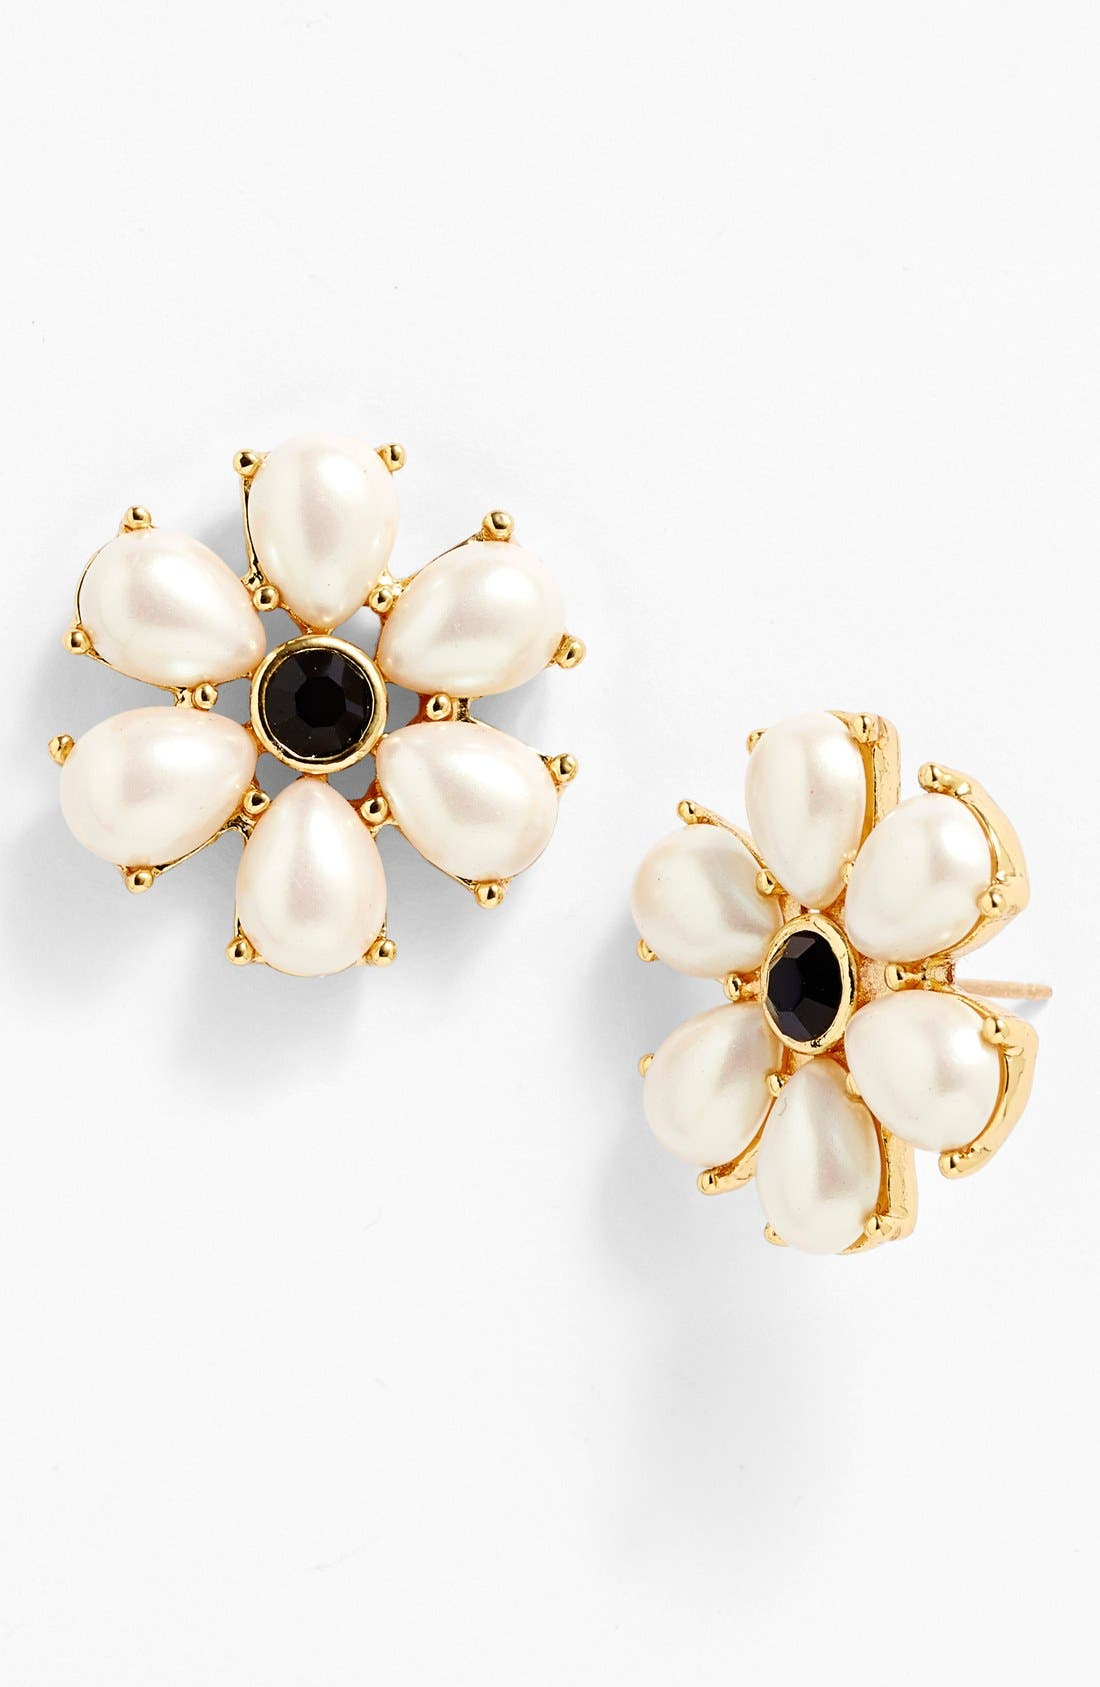 Main Image - kate spade new york 'lady antoinette' stud earrings